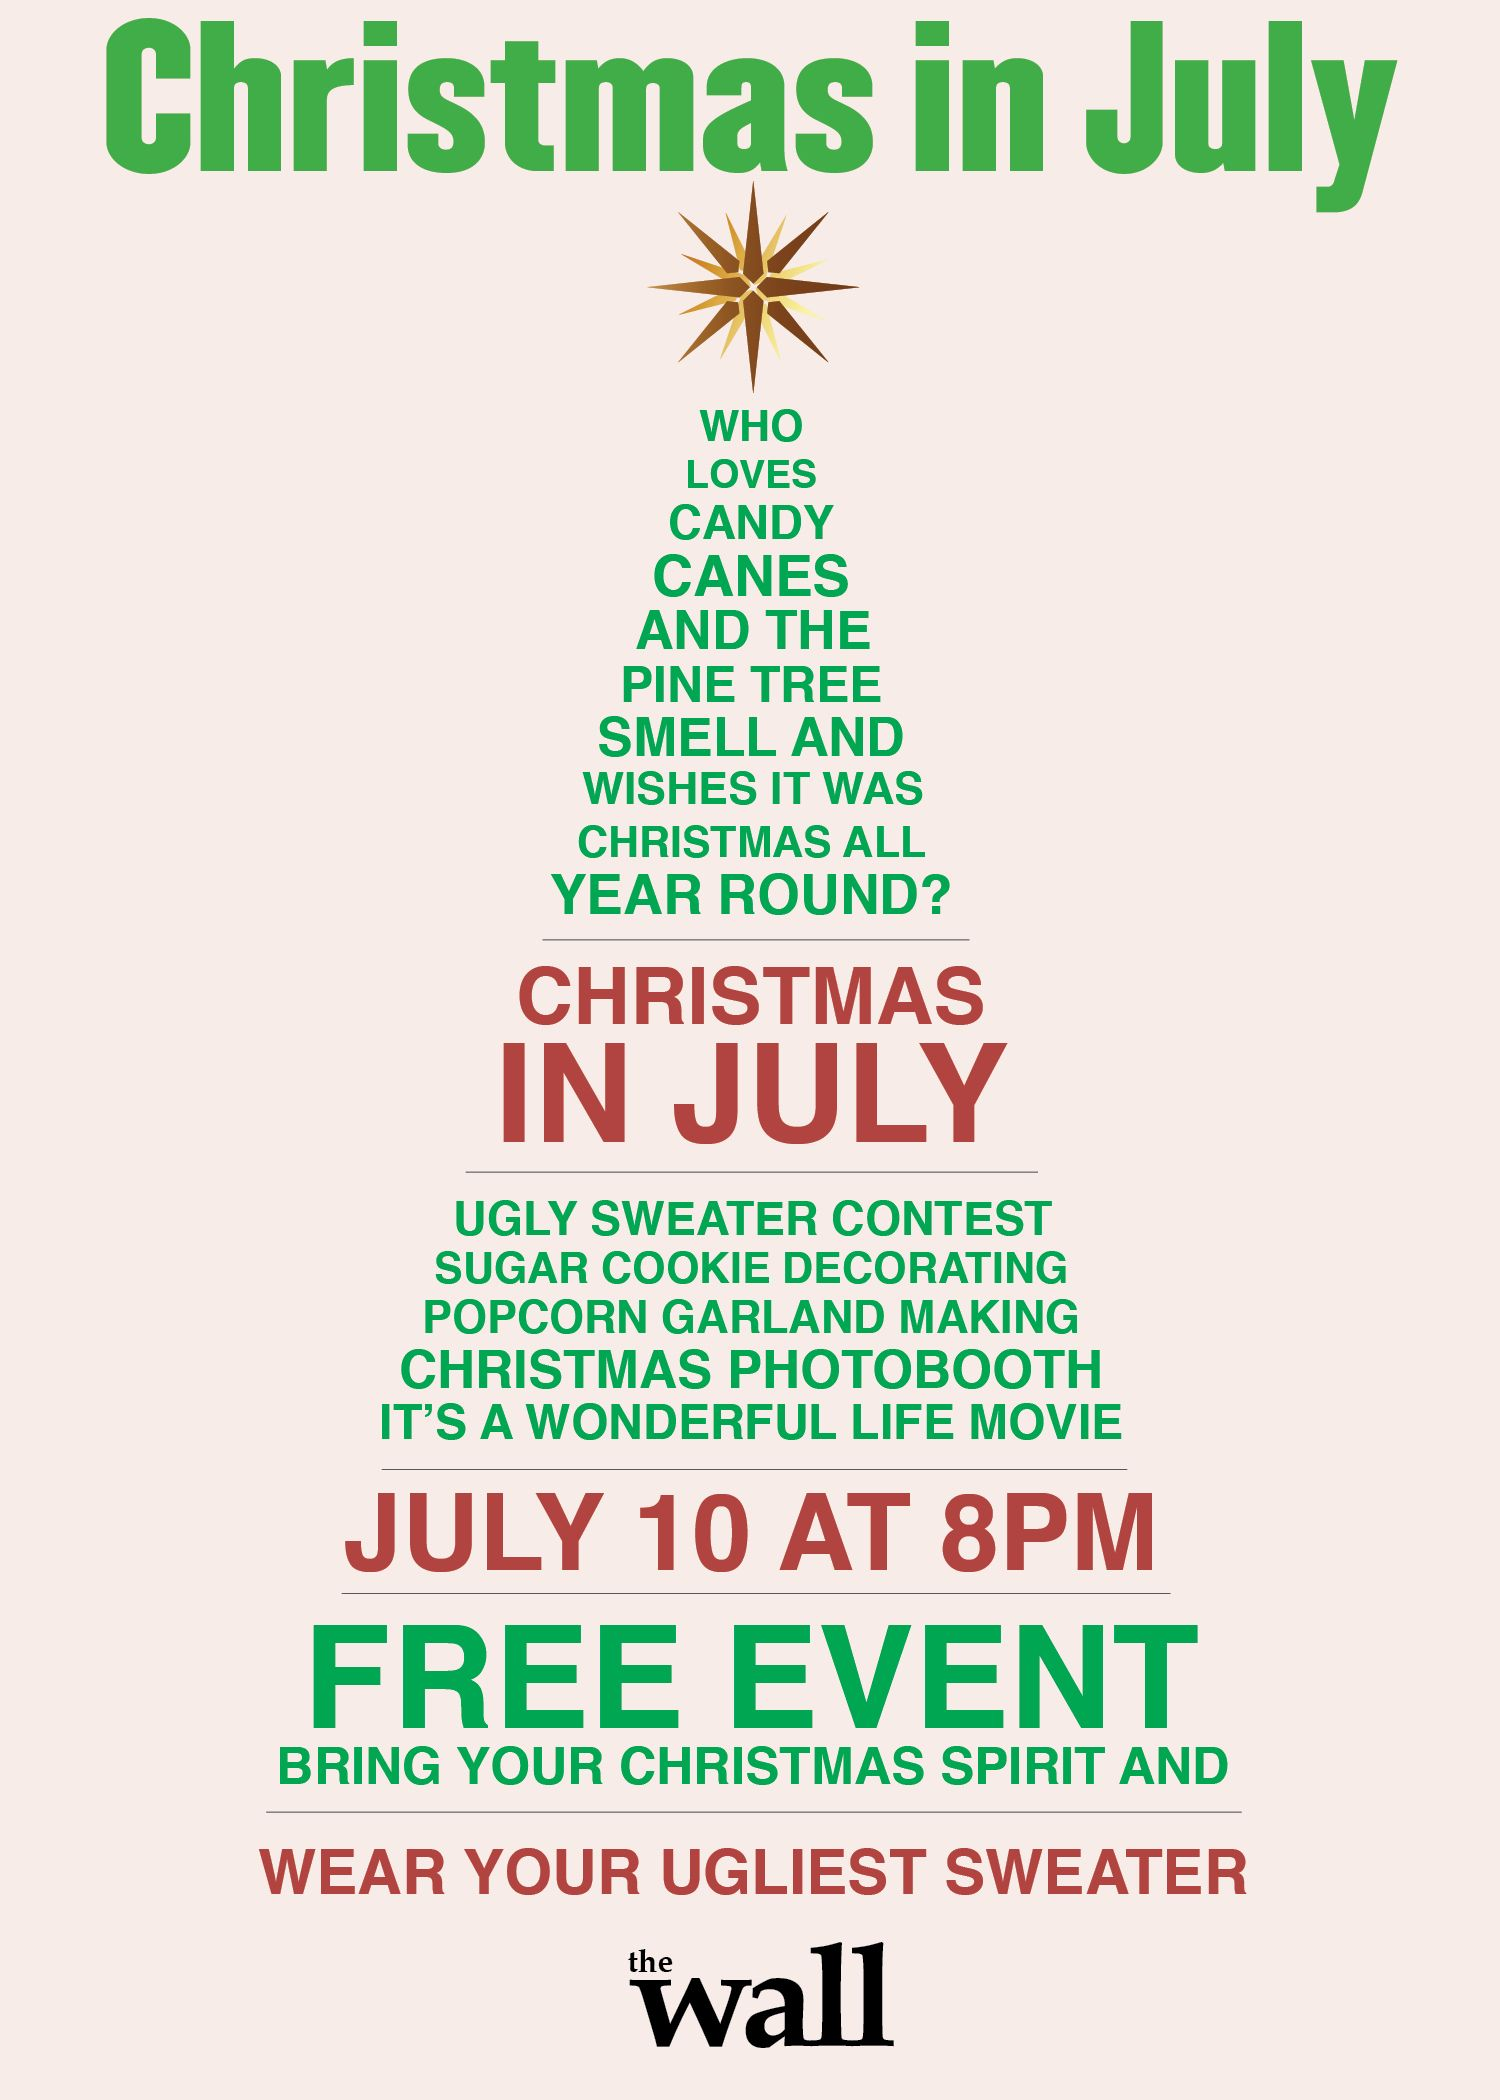 Christmas In July Party At The Wall There Will Be Sugar Cookie